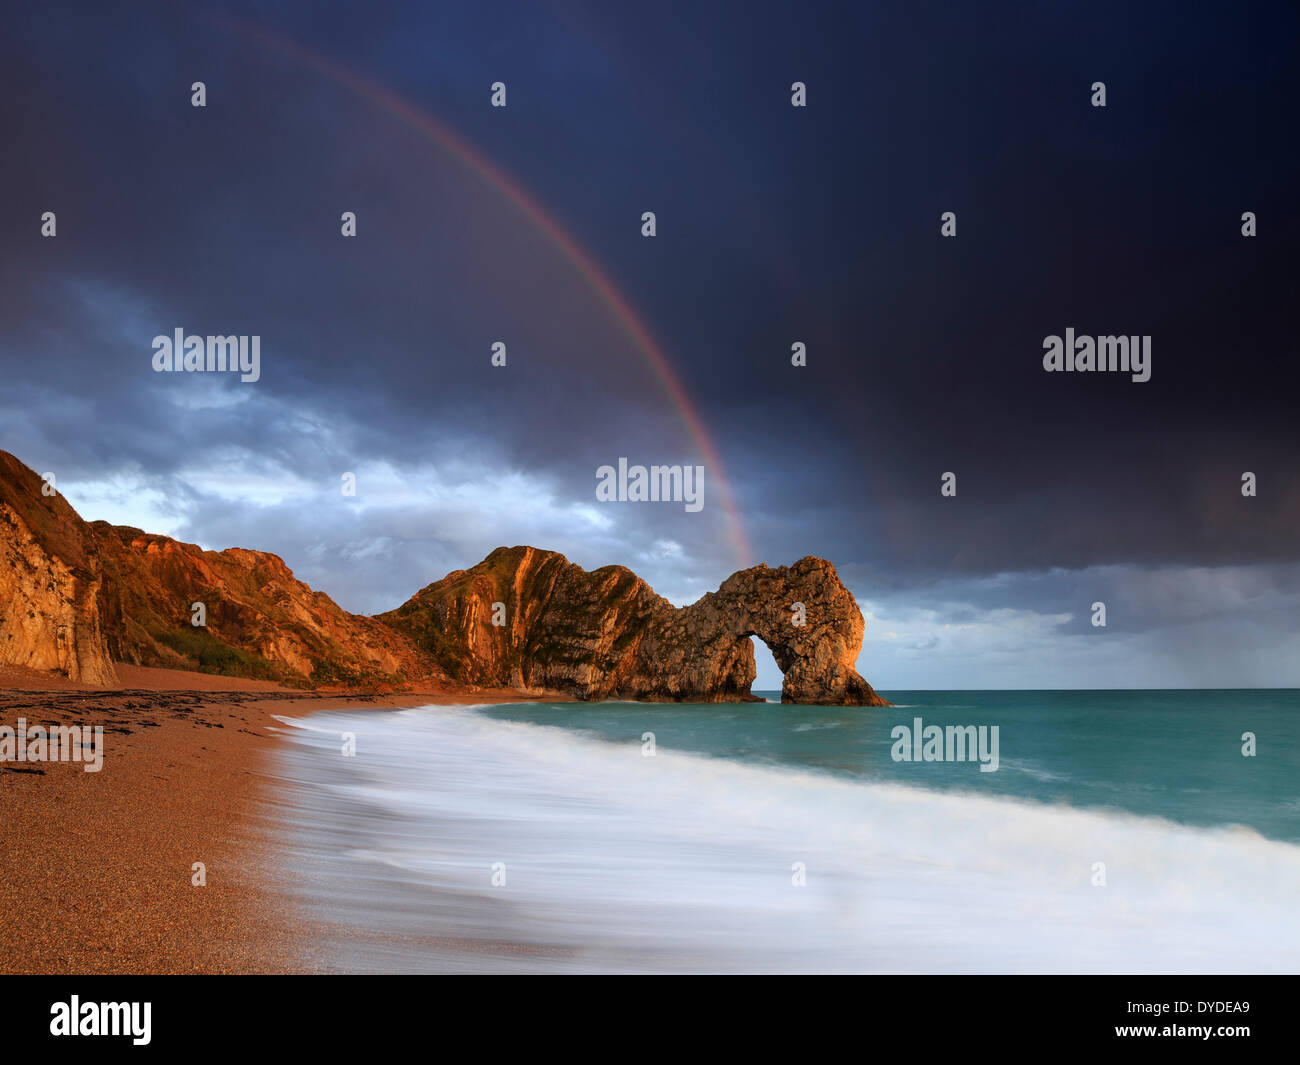 A rainbow over Durdle Door in Dorset. - Stock Image